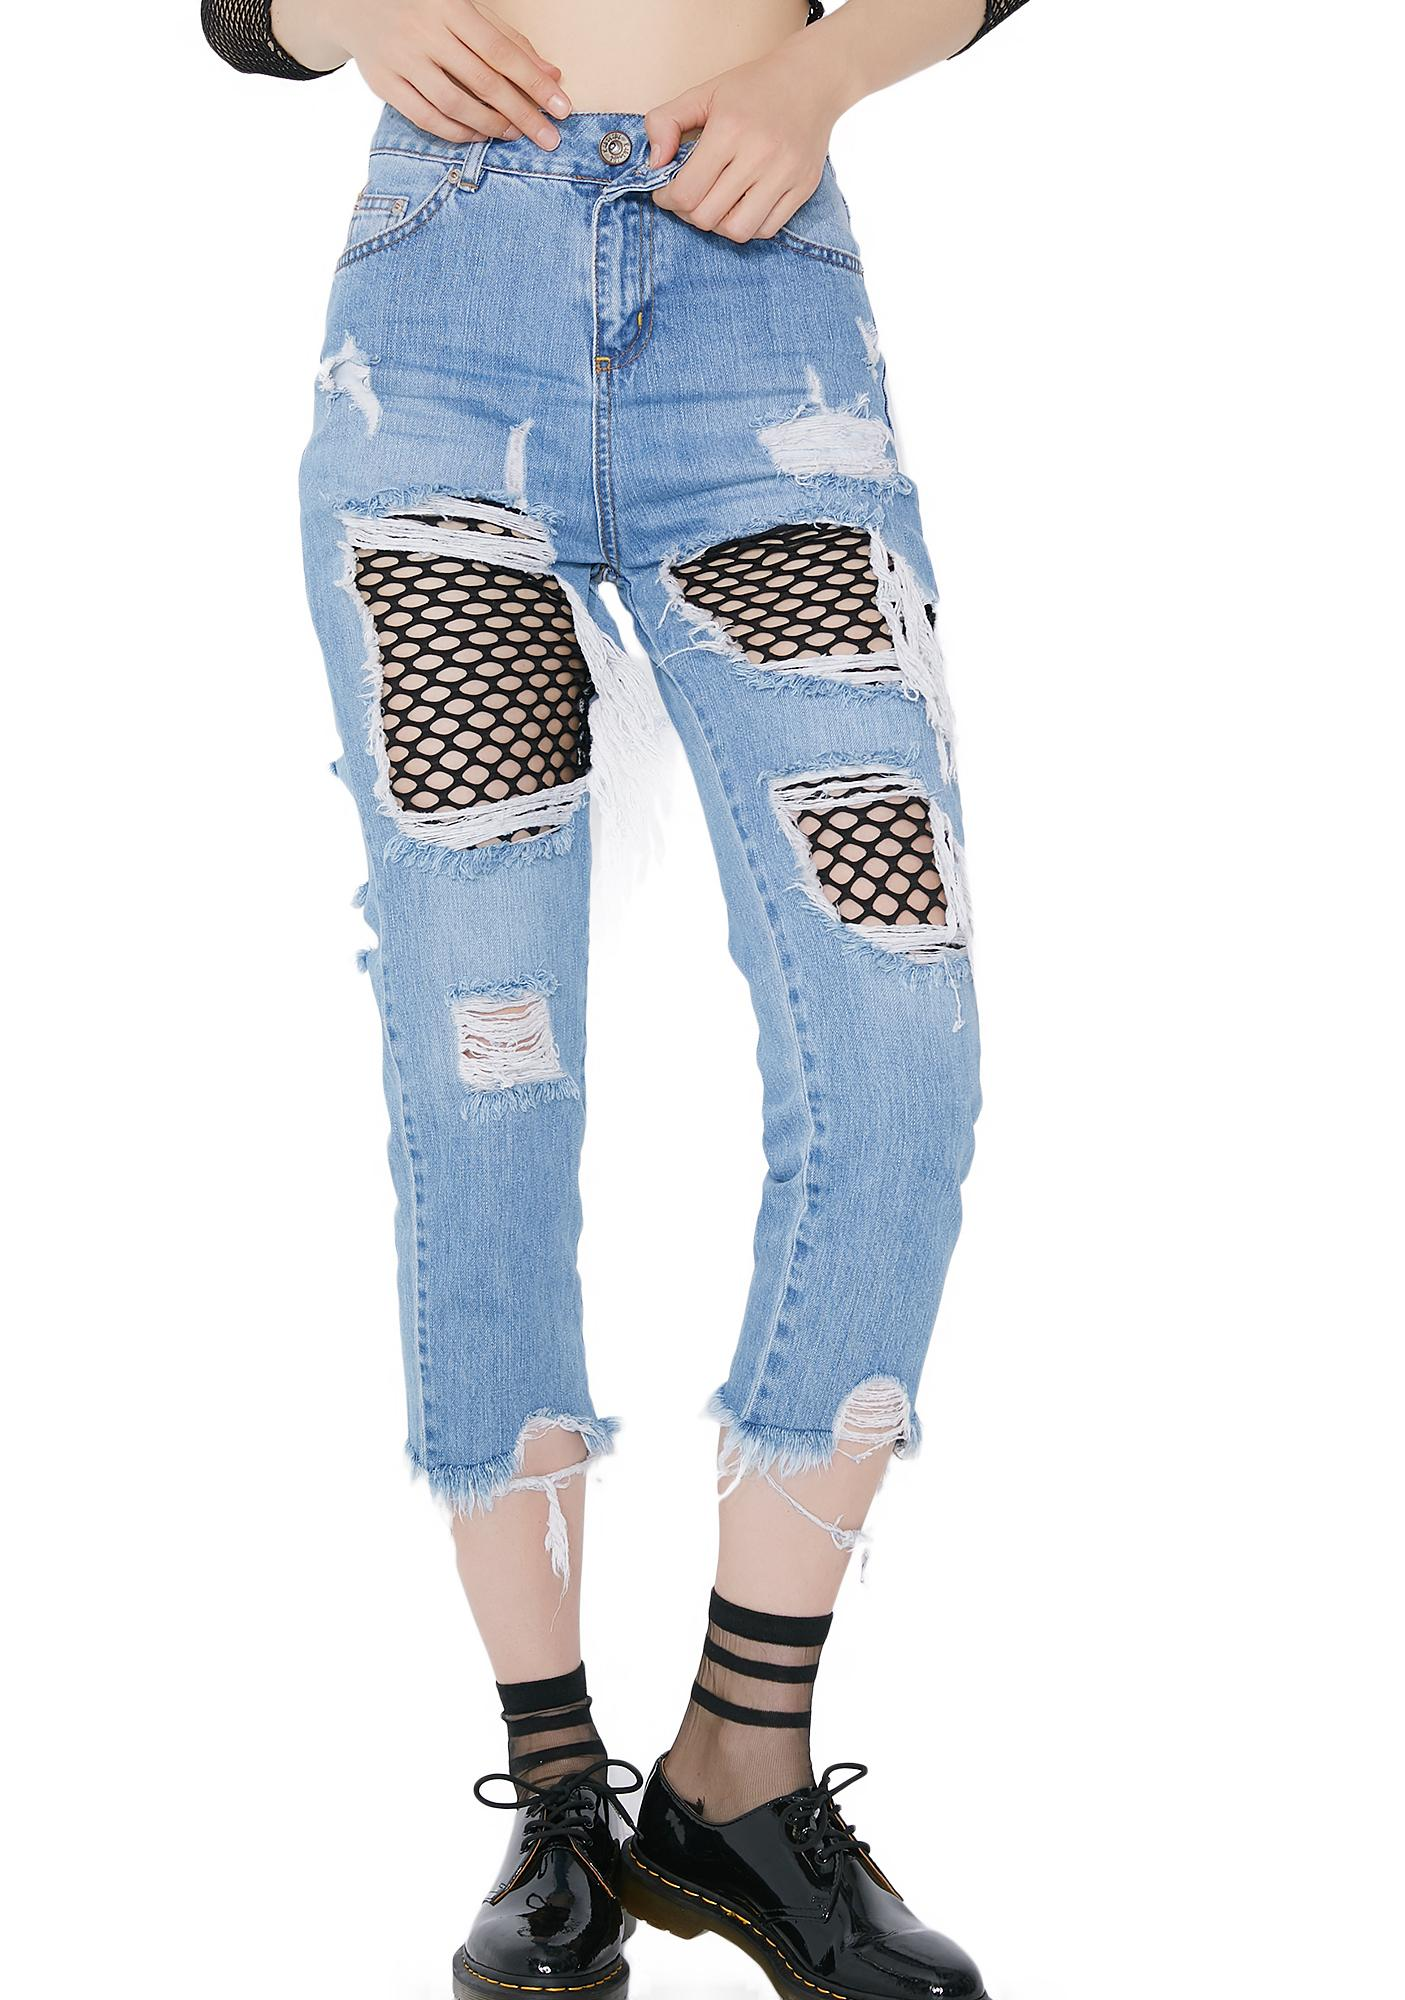 Kiki Riki Freaky Friday Patched Fishnet Jeans